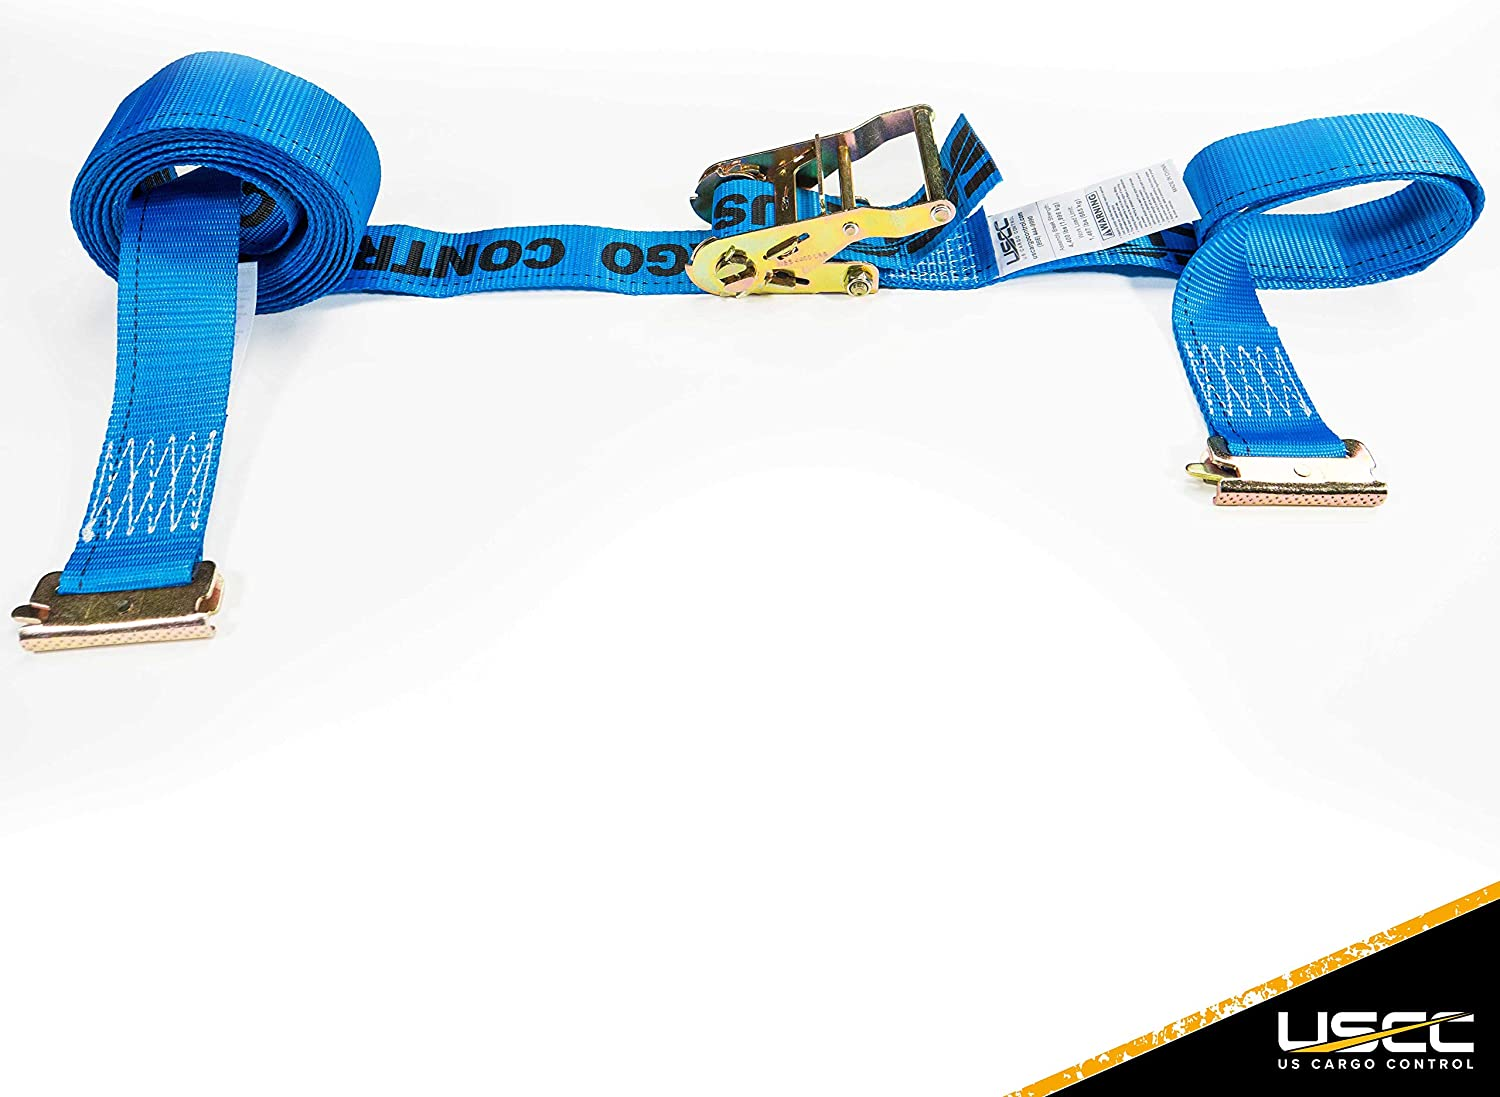 US Cargo Control 2 Inch x 20 Foot Blue E Track Ratchet Strap with Spring E-Fittings 10 Pack - Ratchet Tie Downs -